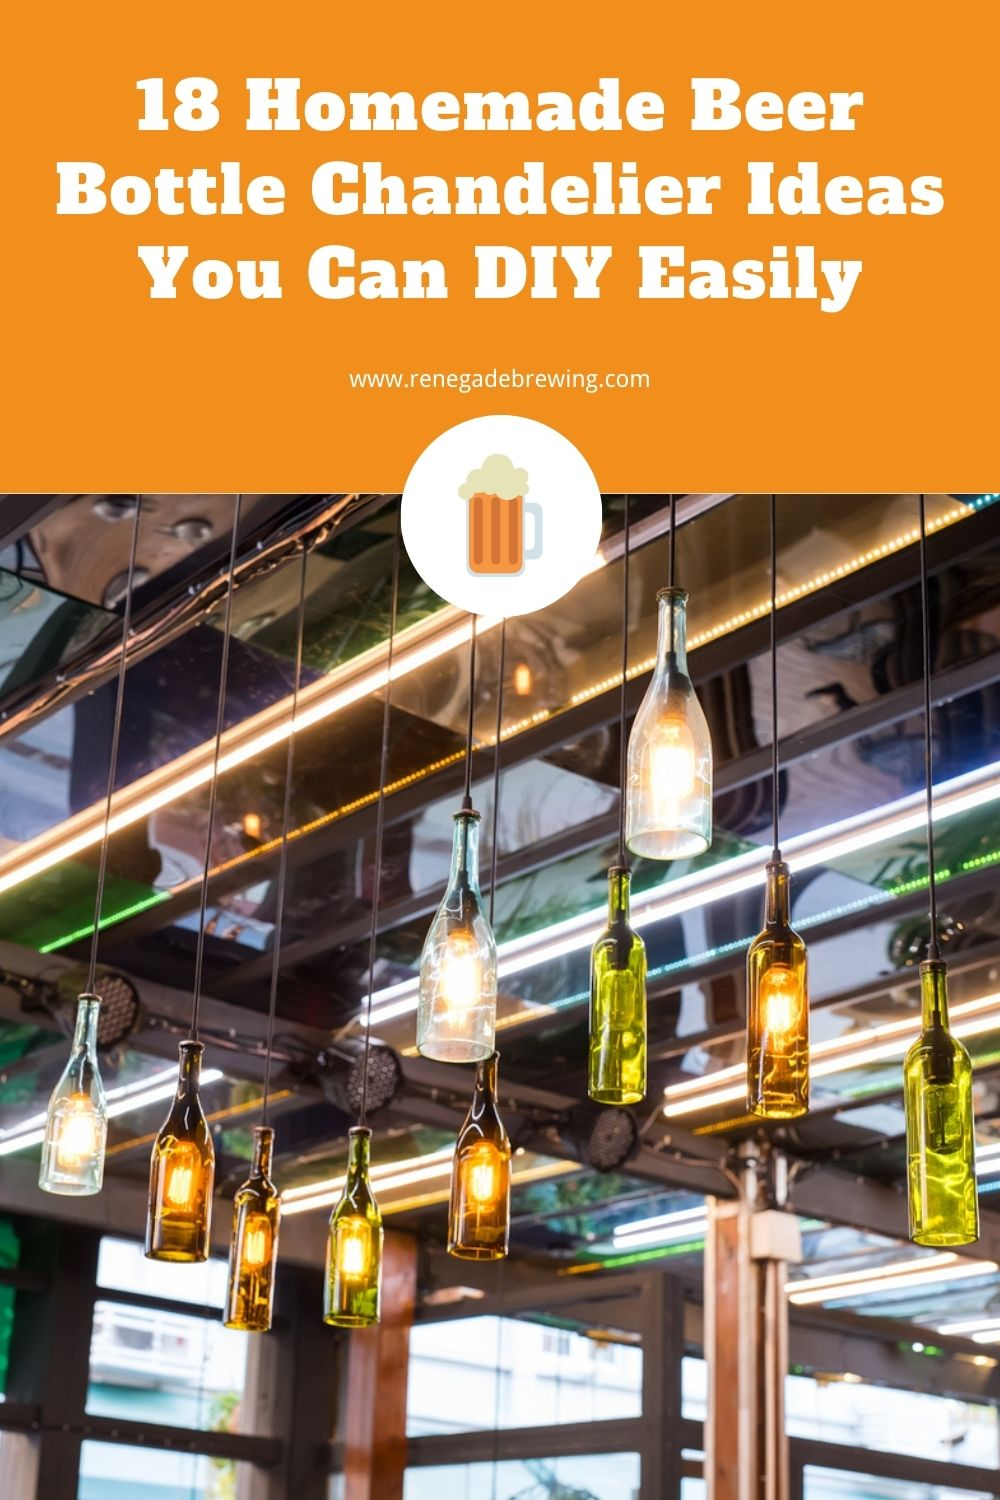 18 Homemade Beer Bottle Chandelier Ideas You Can DIY Easily 1